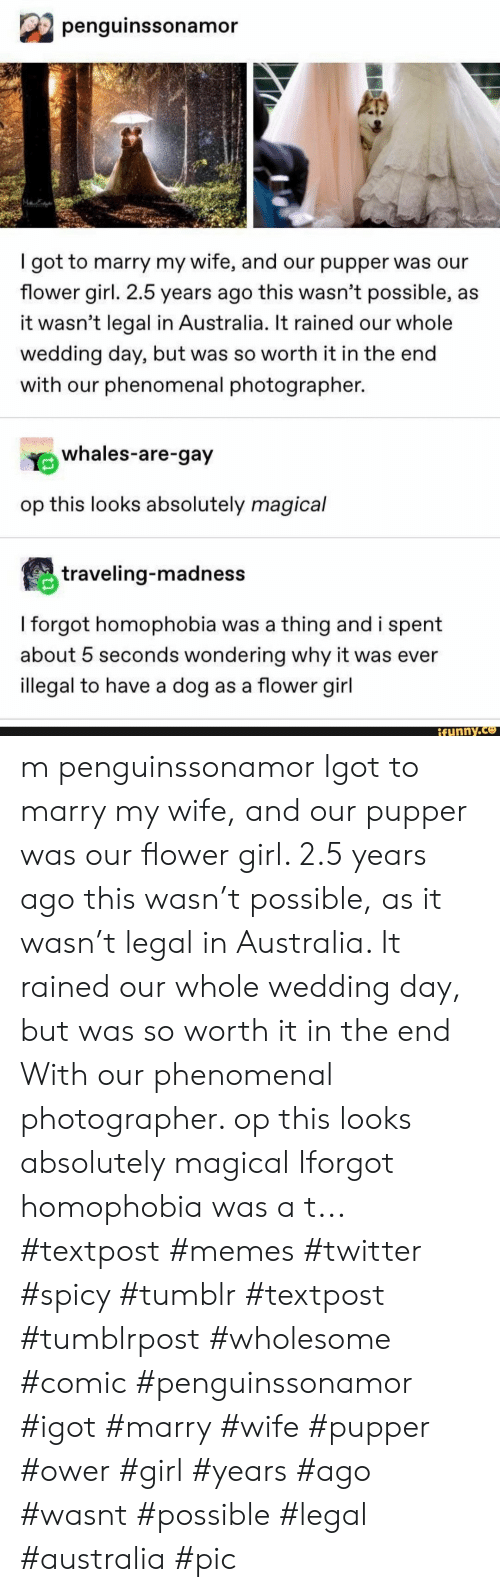 Memes, Phenomenal, and Tumblr: penguinssonamor  got to marry my wife, and our pupper was our  flower girl. 2.5 years ago this wasn't possible, as  it wasn't legal in Australia. It rained our whole  wedding day, but was so worth it in the end  with our phenomenal photographer.  whales-are-gay  op this looks absolutely magical  traveling-madness  I forgot homophobia was a thing and i spent  about 5 seconds wondering why it was ever  illegal to have a dog as a flower girl  ifunny.co m penguinssonamor Igot to marry my wife, and our pupper was our flower girl. 2.5 years ago this wasn't possible, as it wasn't legal in Australia. It rained our whole wedding day, but was so worth it in the end With our phenomenal photographer. op this looks absolutely magical Iforgot homophobia was a t... #textpost #memes #twitter #spicy #tumblr #textpost #tumblrpost #wholesome #comic #penguinssonamor #igot #marry #wife #pupper #ower #girl #years #ago #wasnt #possible #legal #australia #pic